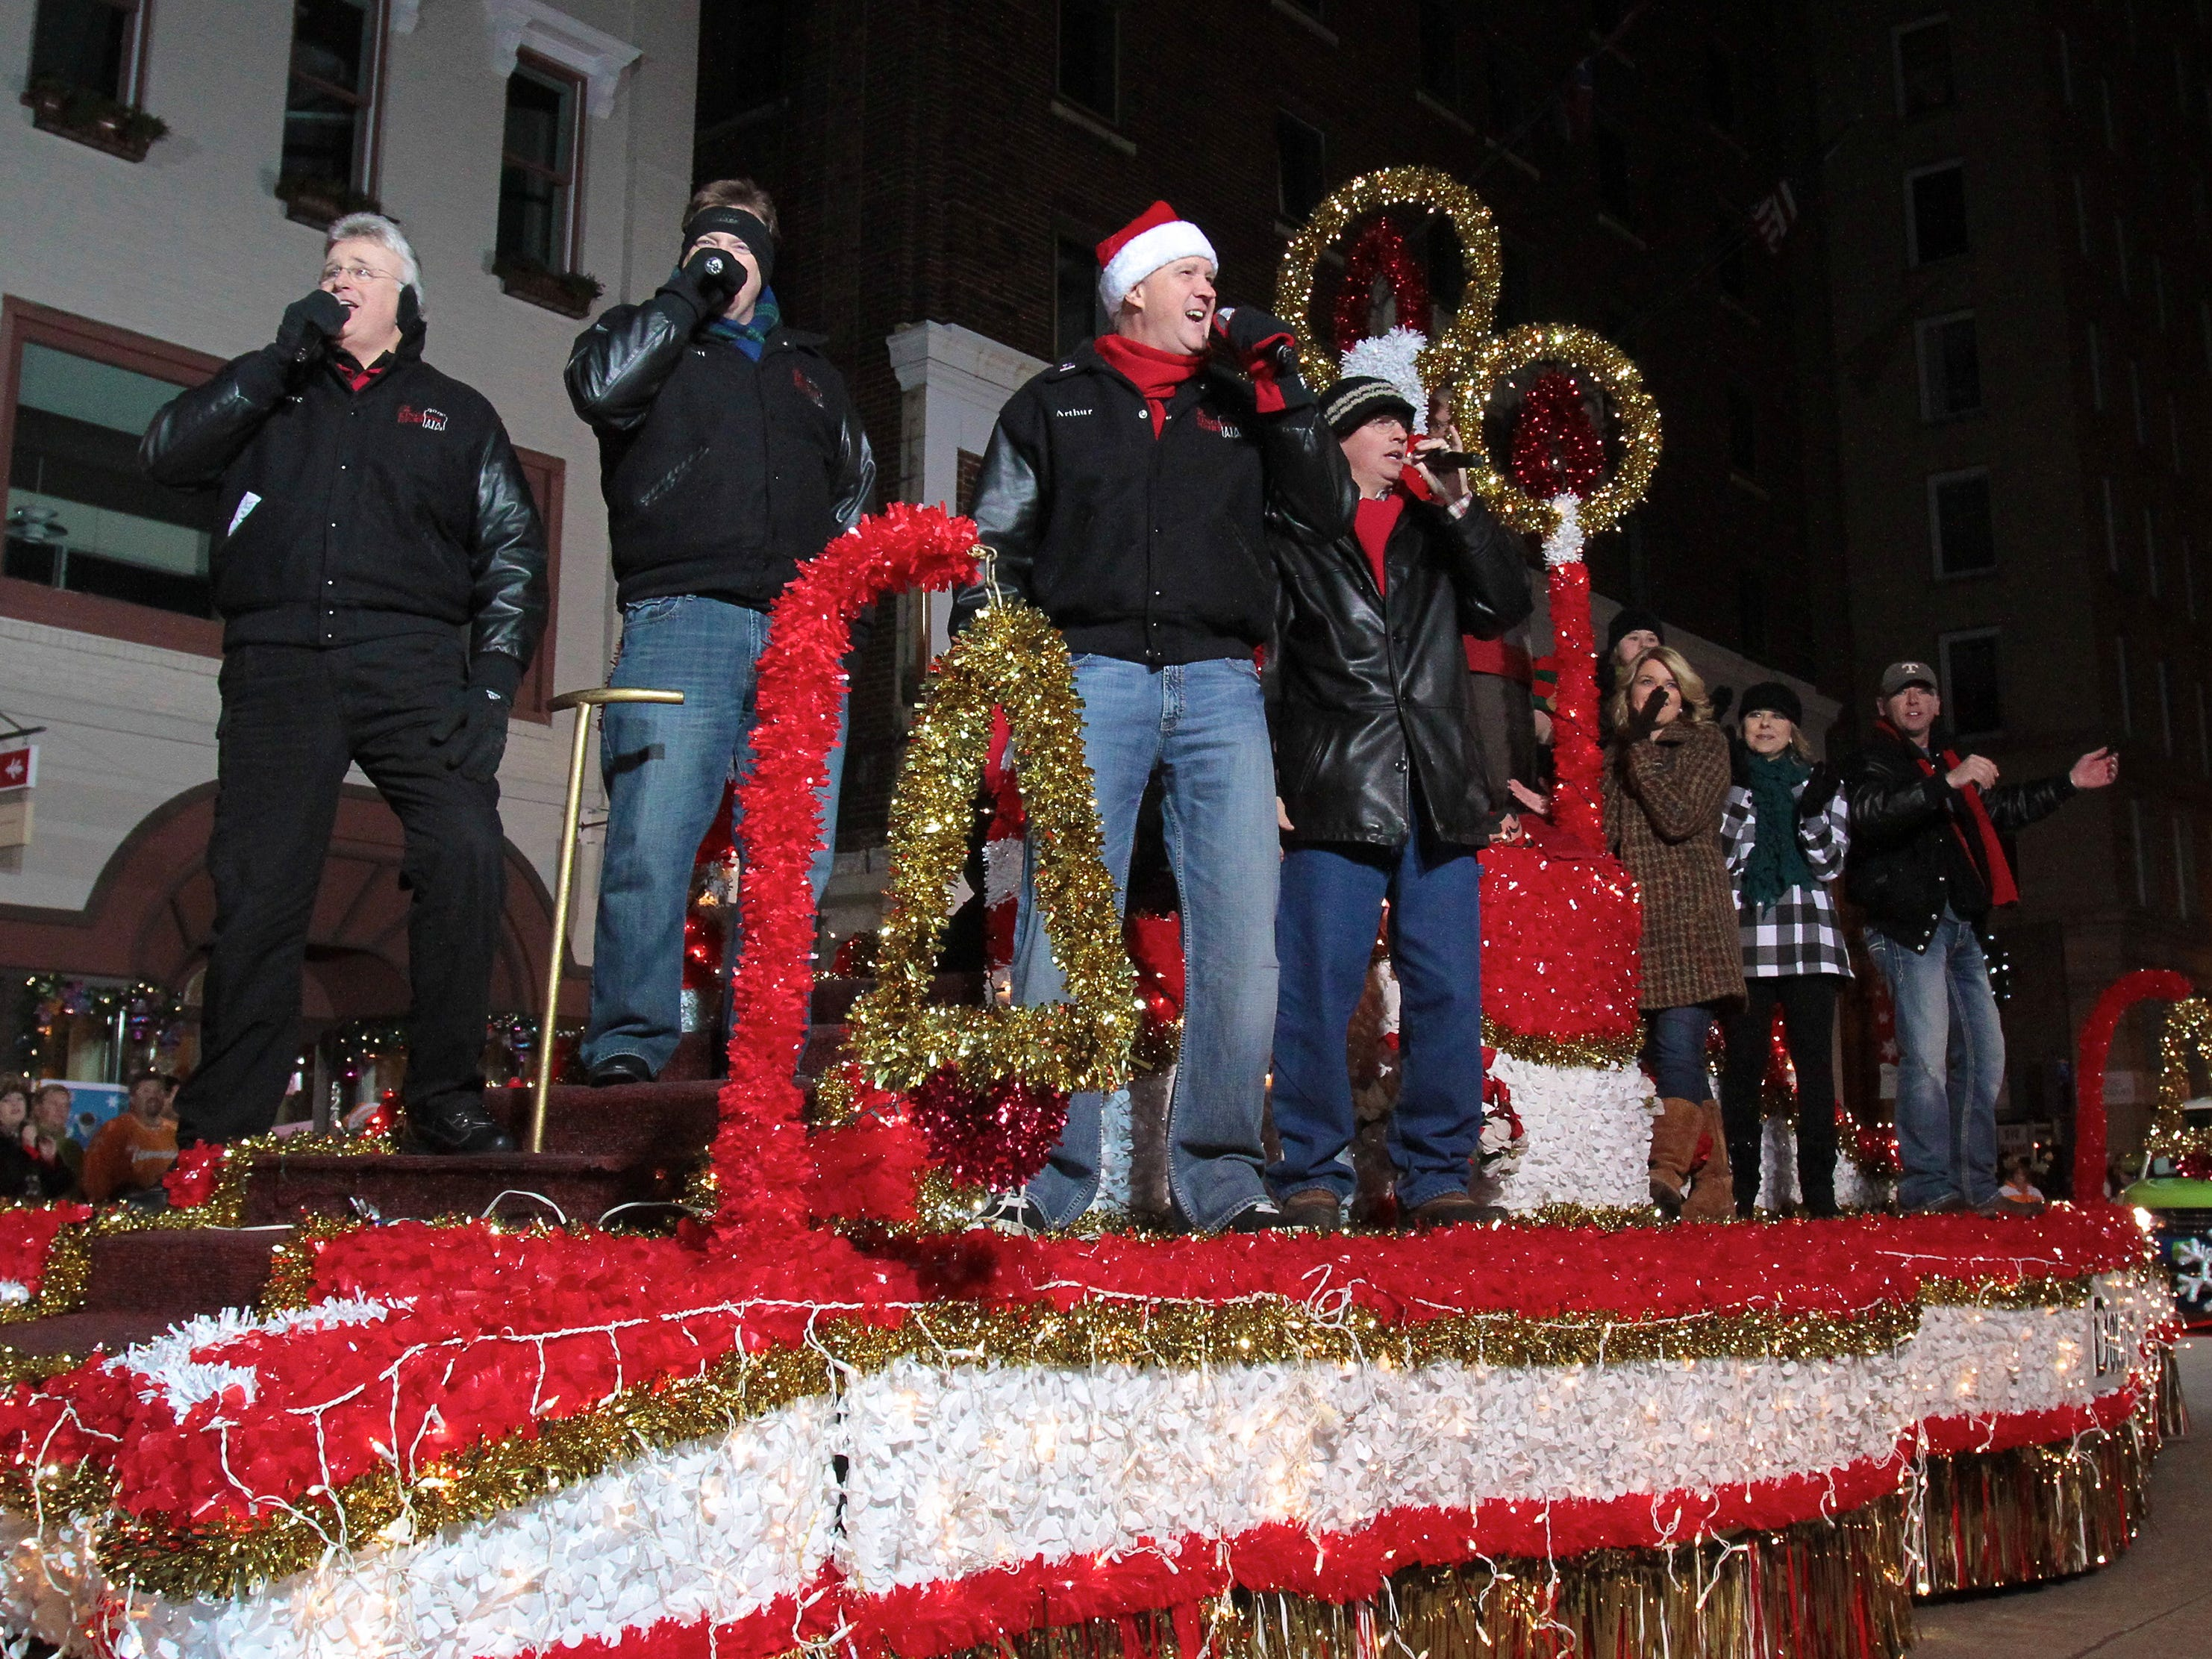 Members of the Kingdom Heirs from Dollywood perform on Gay Street during the annual Knoxville Christmas Parade on Friday, December 3, 2010.